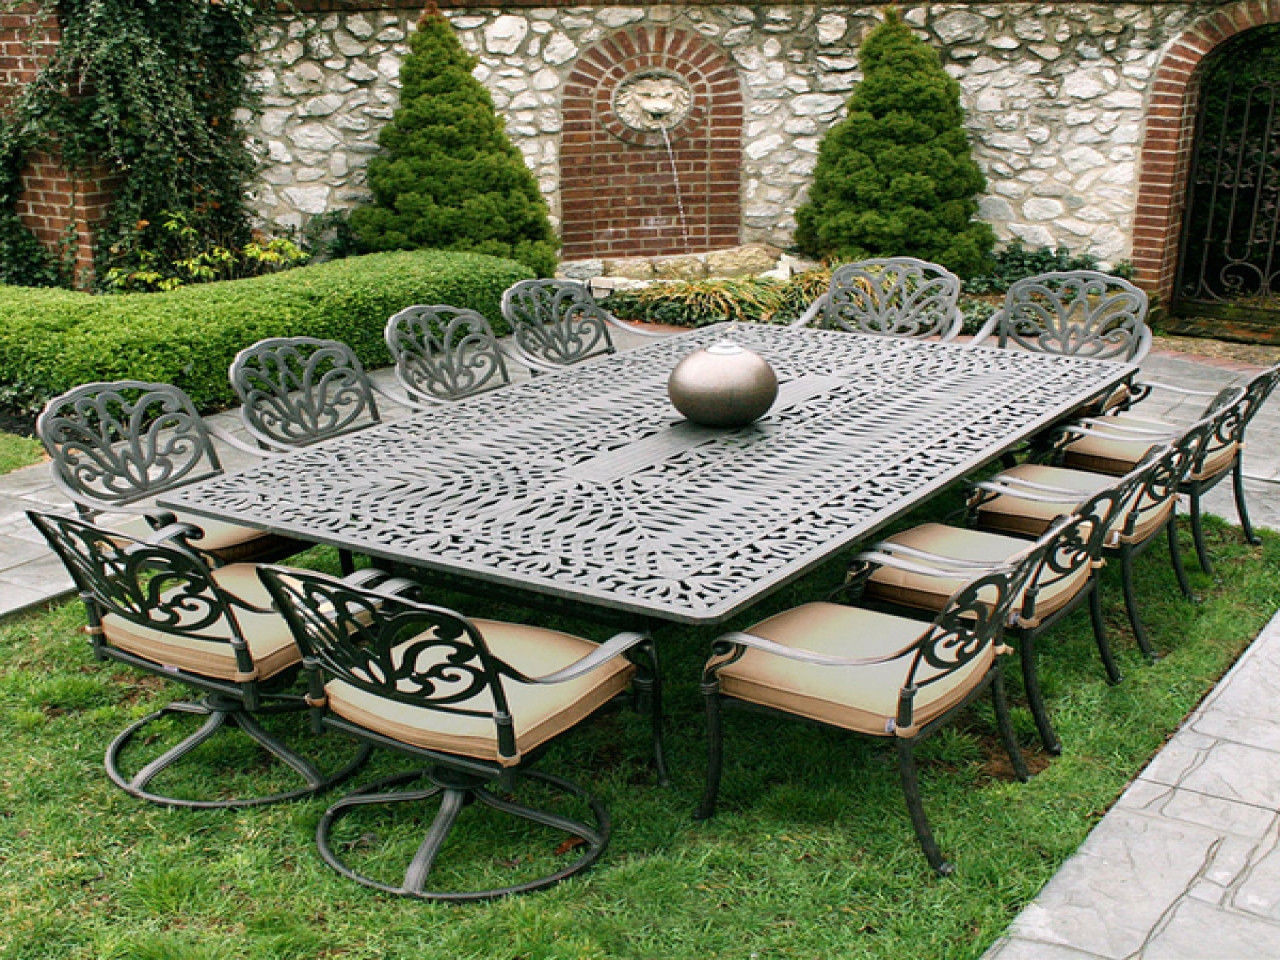 Best ideas about Cast Iron Patio Furniture . Save or Pin White metal garden table and chairs iron patio furniture Now.